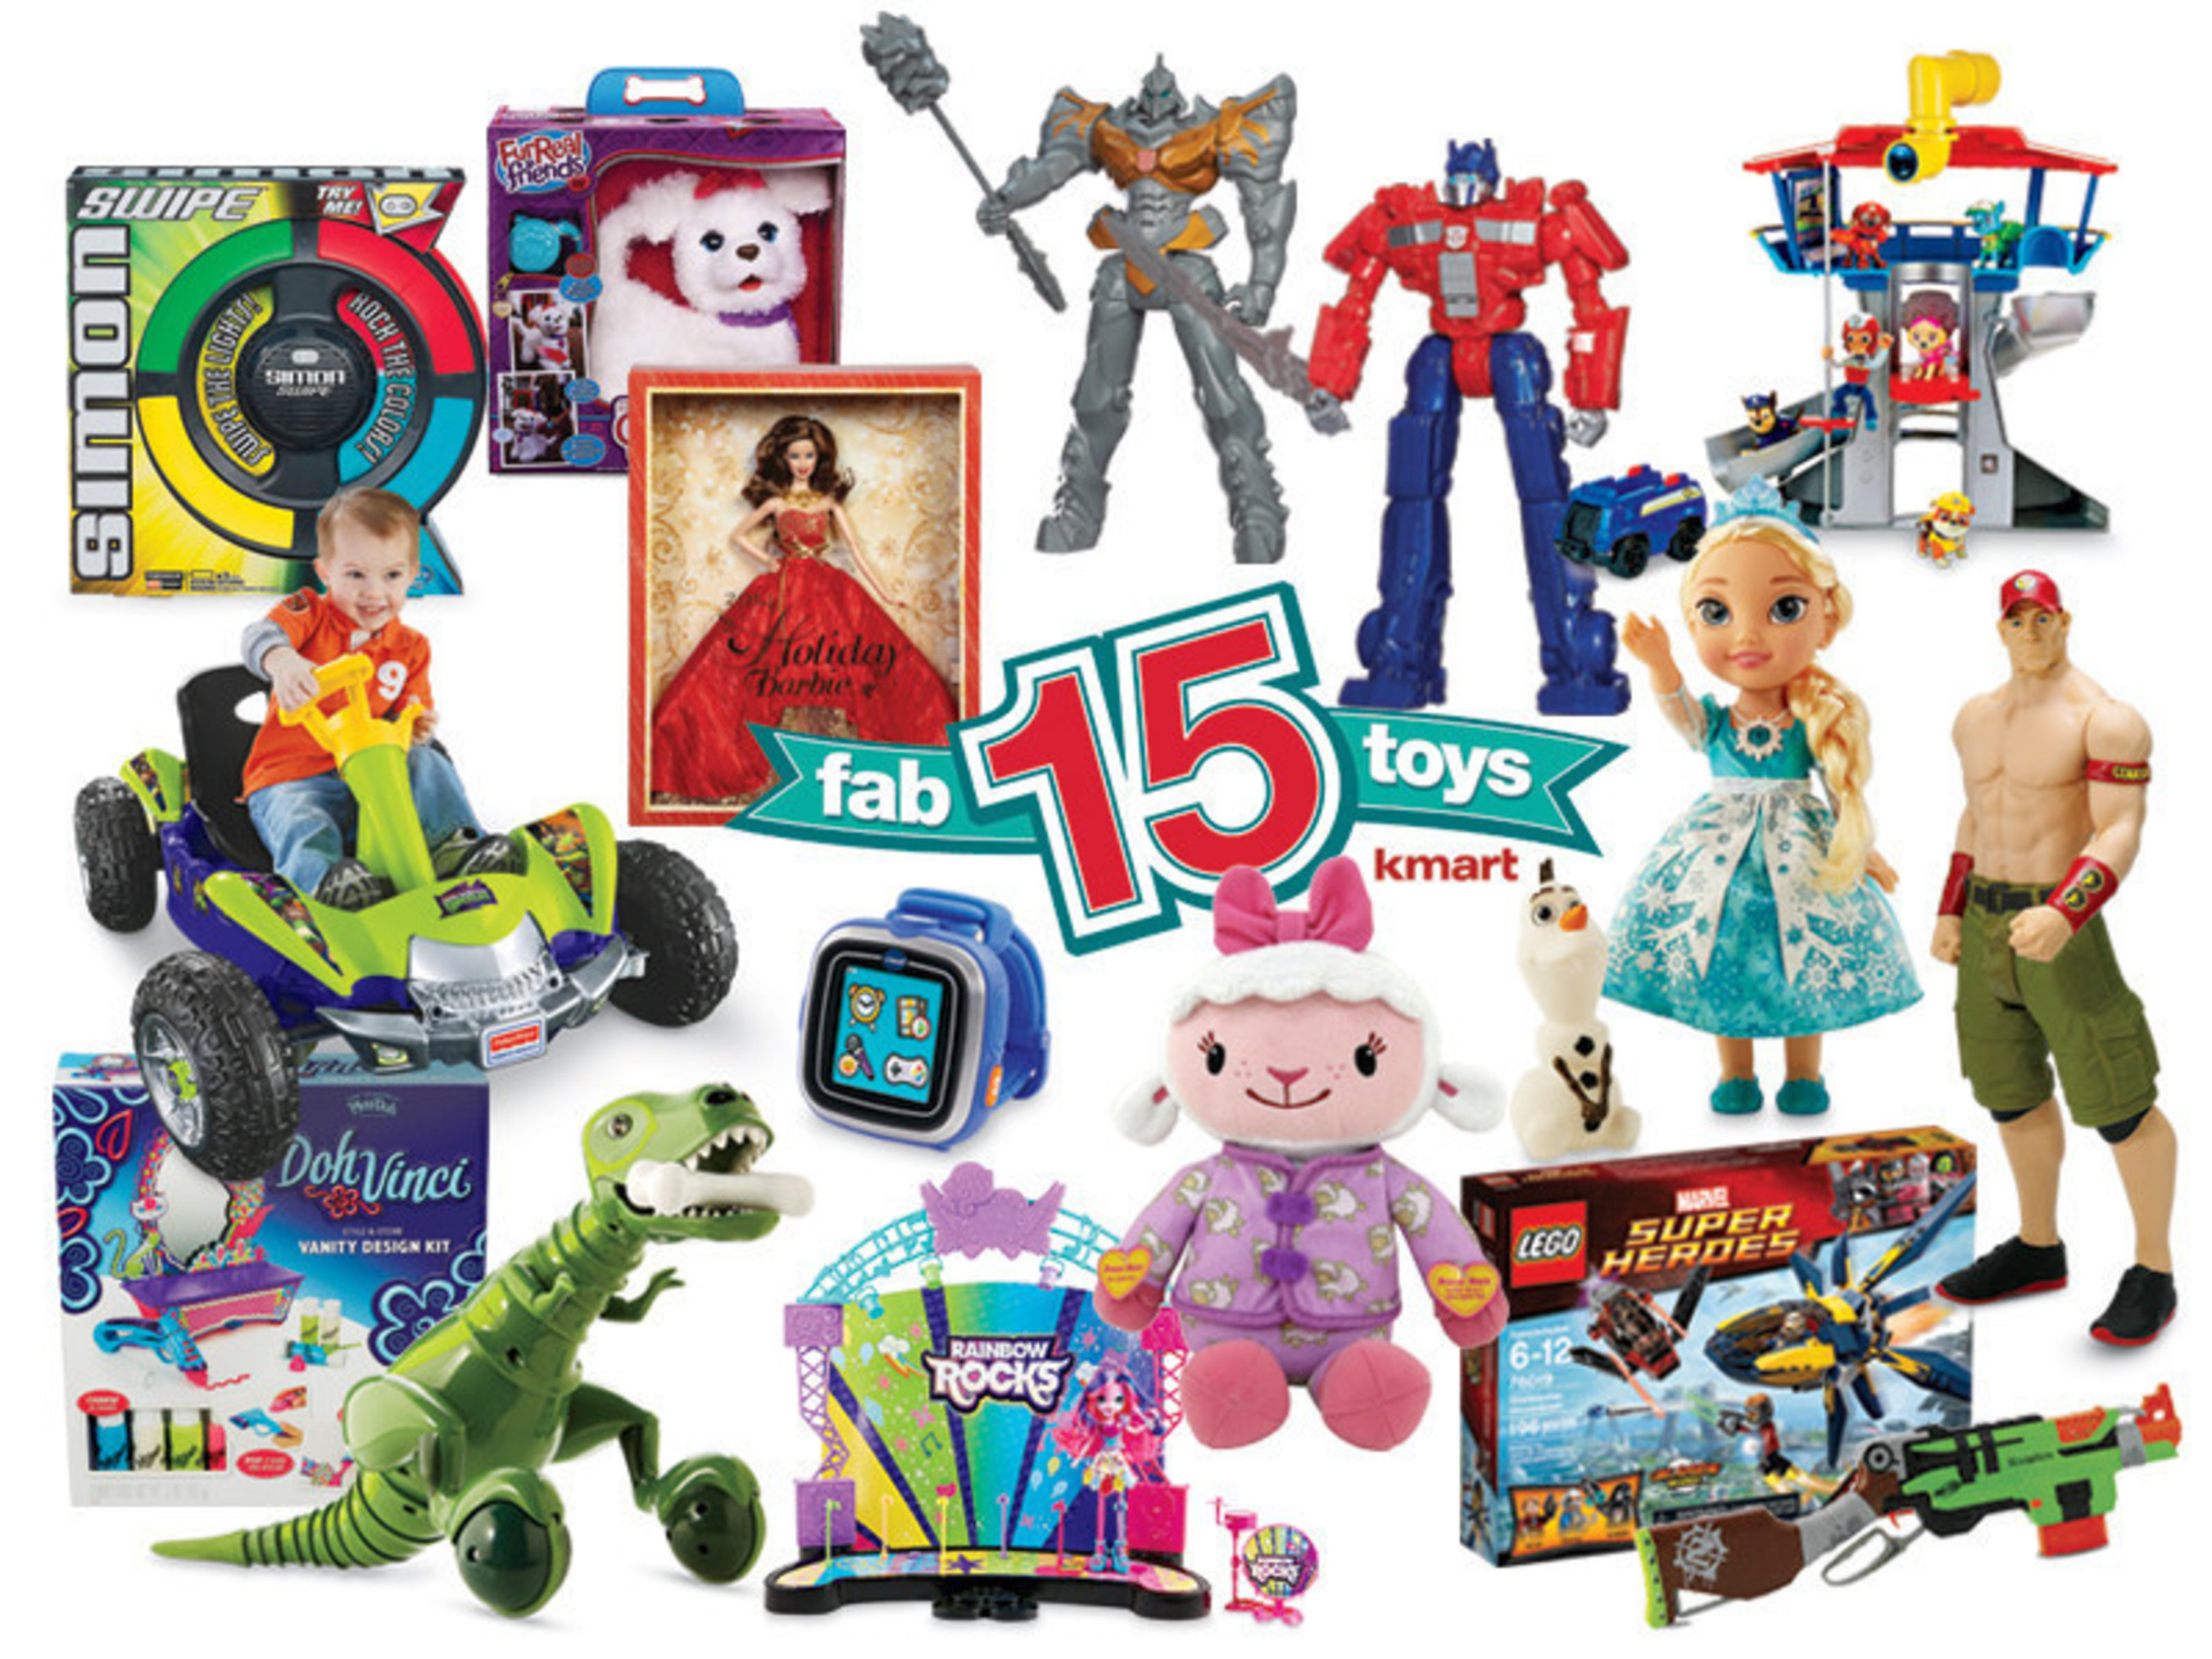 Toys At Kmart : Kmart fab toy shoppers to make season brighter for st